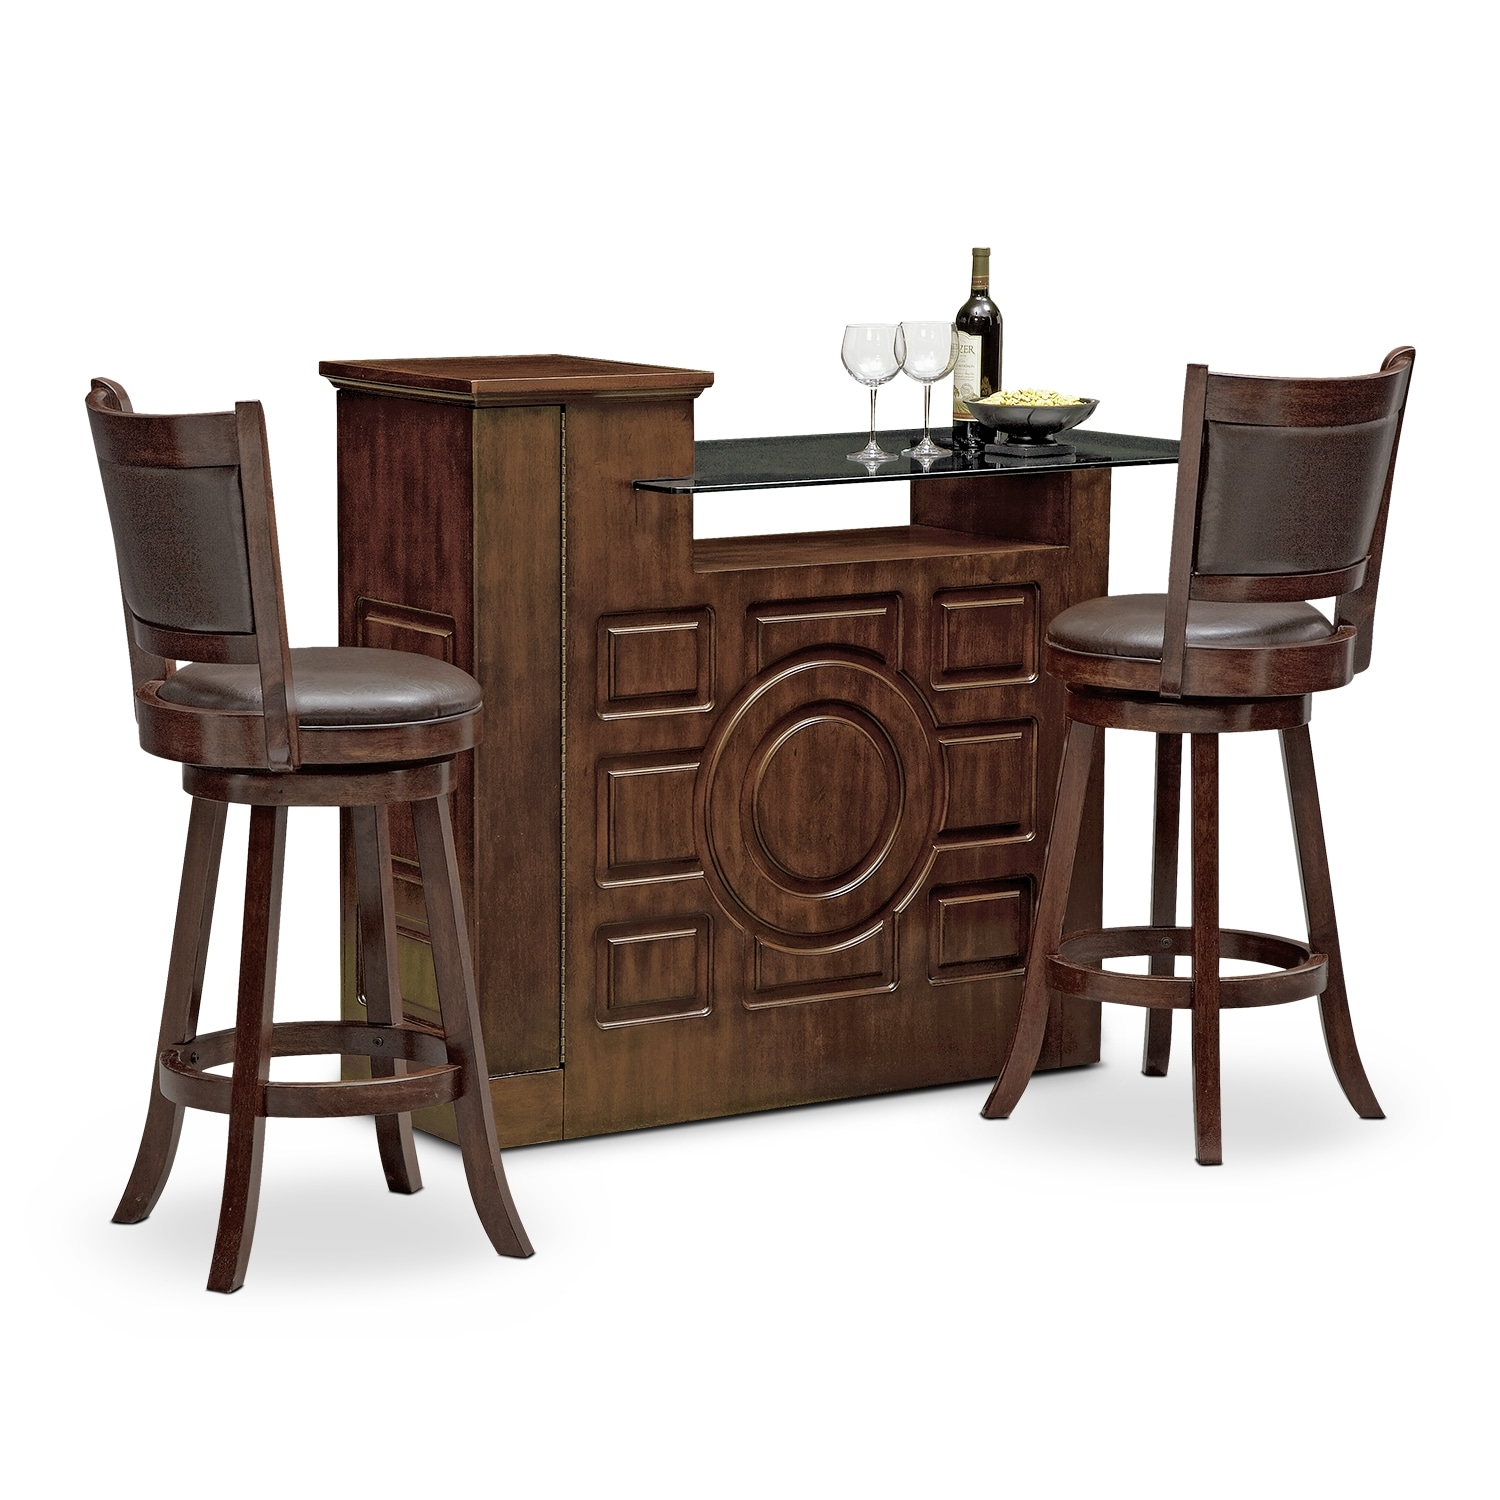 Origins everly dining room 3 pc bar set value city for 3 pc dining room set